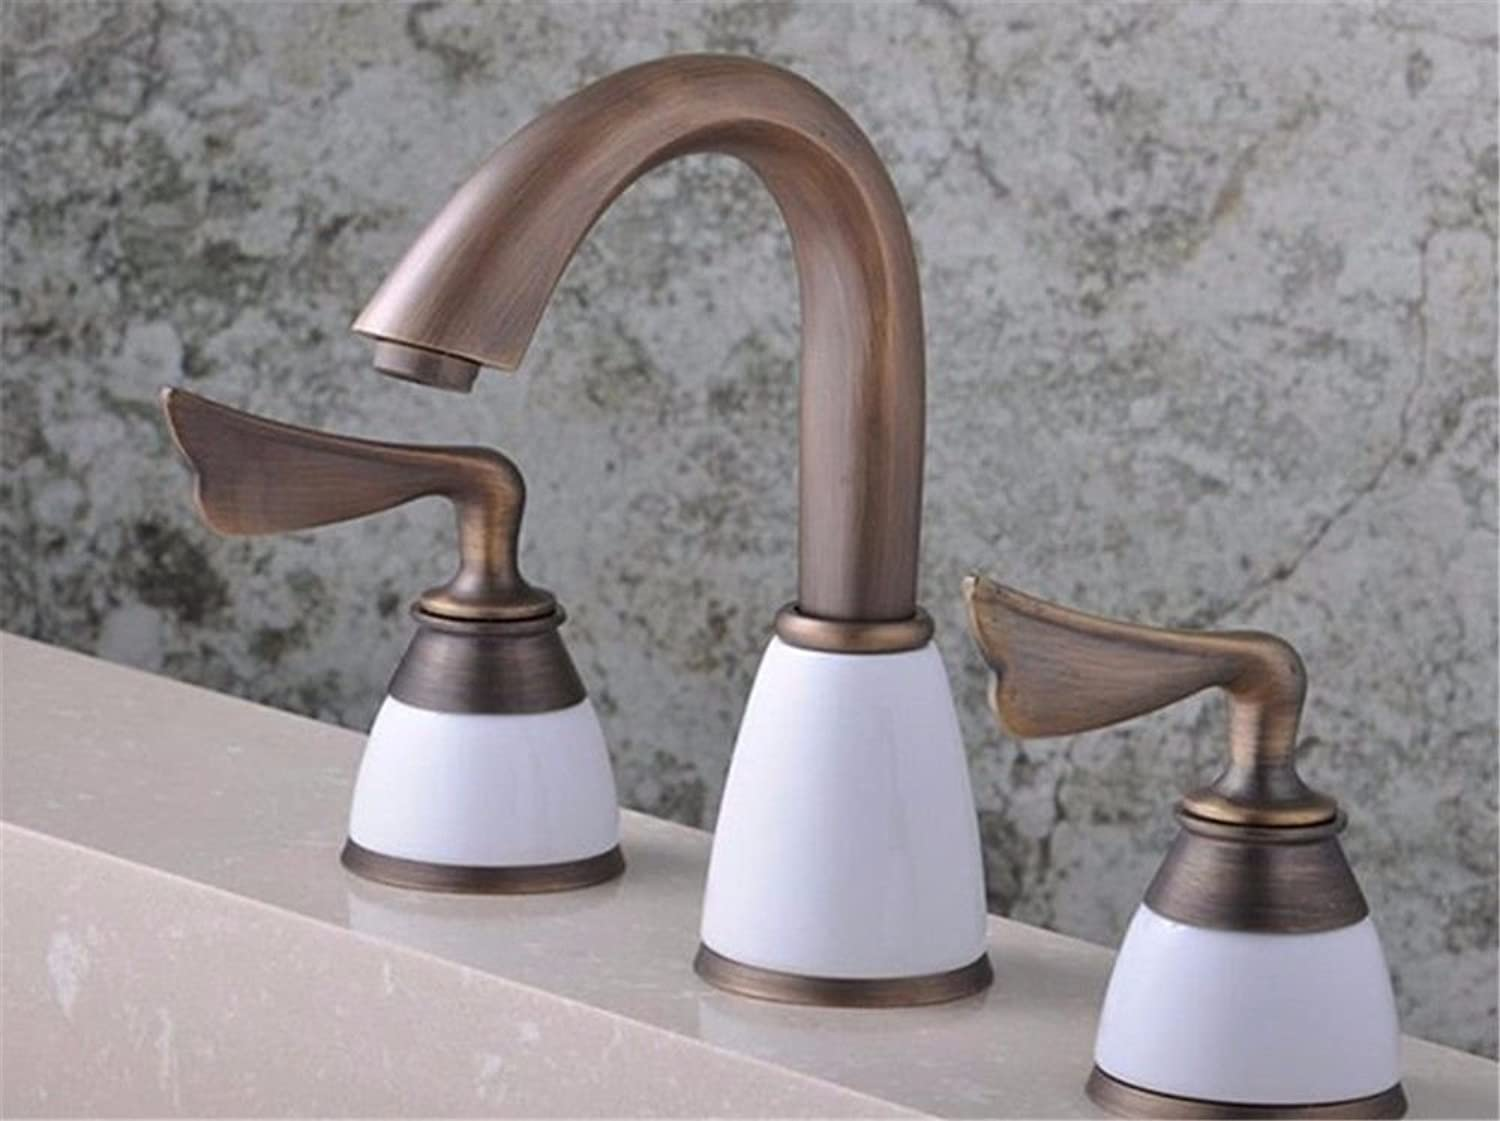 Gyps Faucet Basin Mixer Tap Waterfall Faucet Antique Bathroom The Antique copper cold water faucet three hole retro bath into the wall bathroom sink kitchen sink Bathroom Tub Lever Faucet